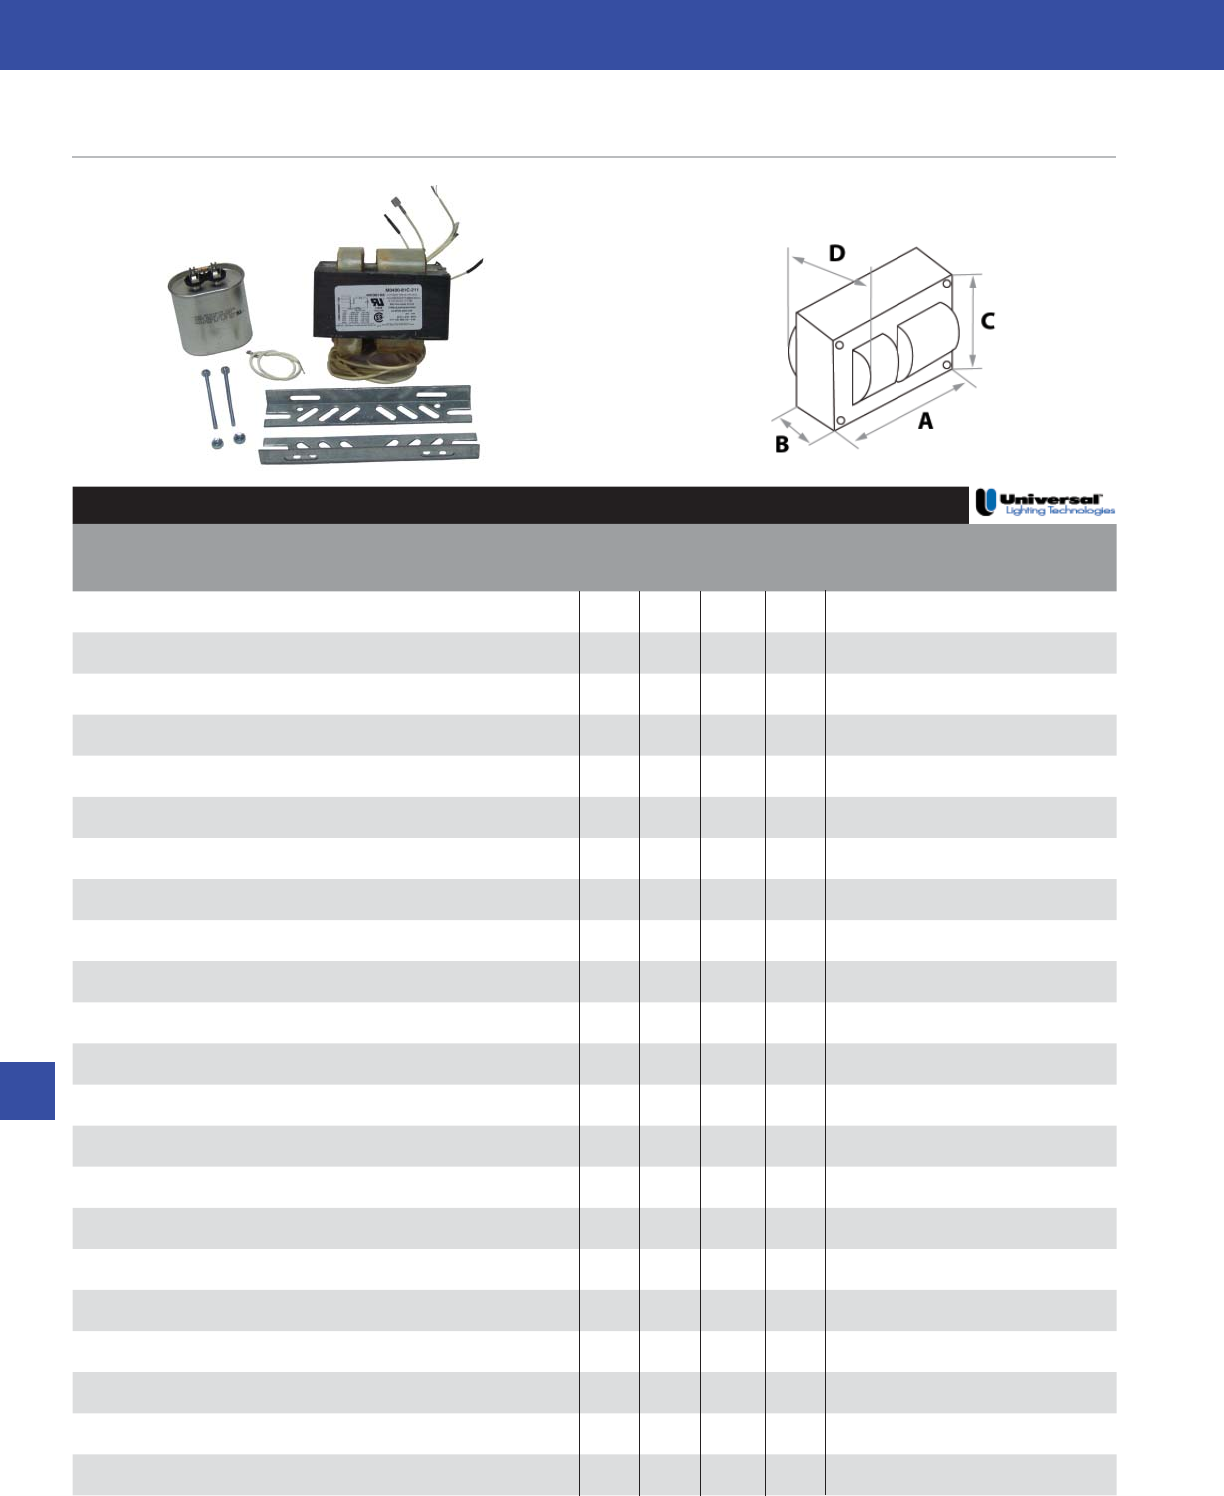 A Bulbs And Ballast Section 118029 Catalog Icn2s110sc Wiring Diagram